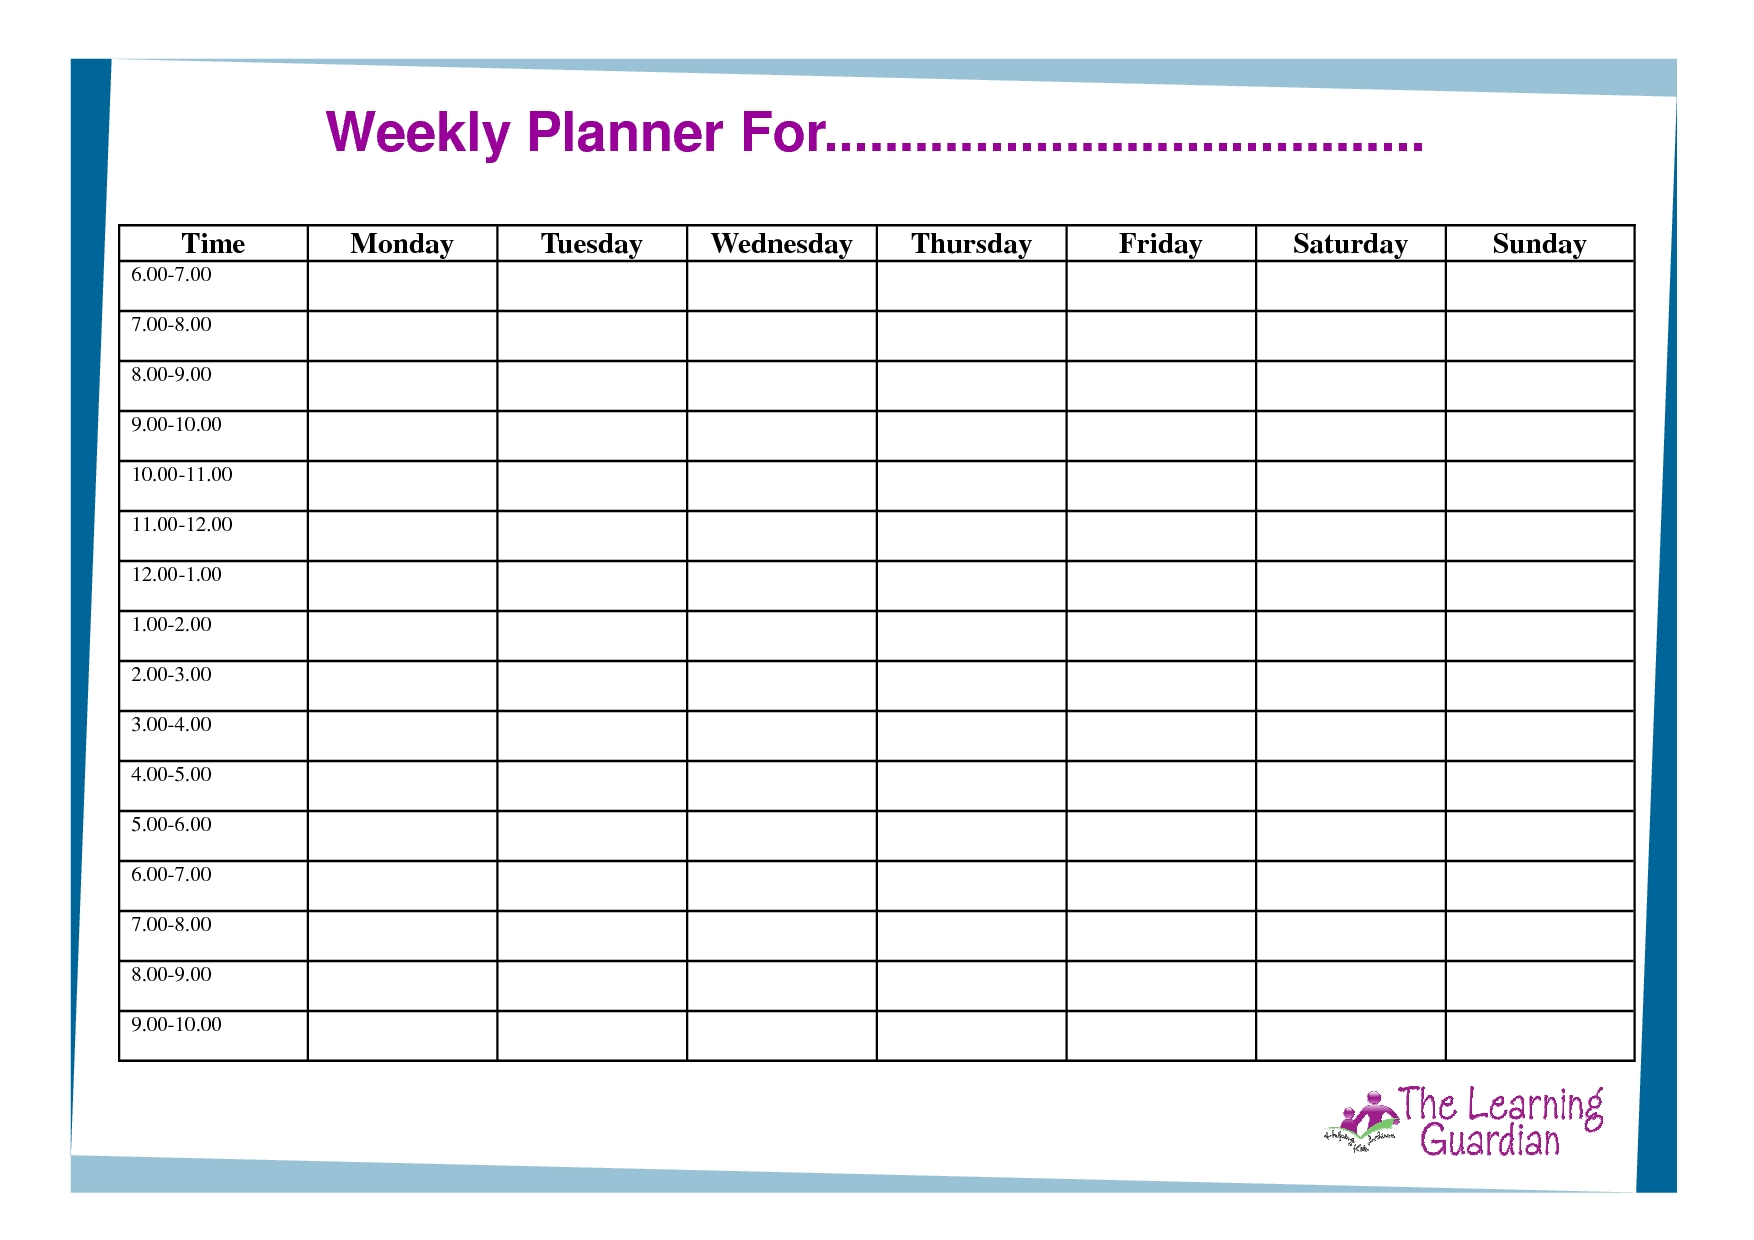 Free Printable Weekly Calendar Templates | Weekly Planner For Time with Weekly Agenda Monday Through Friday